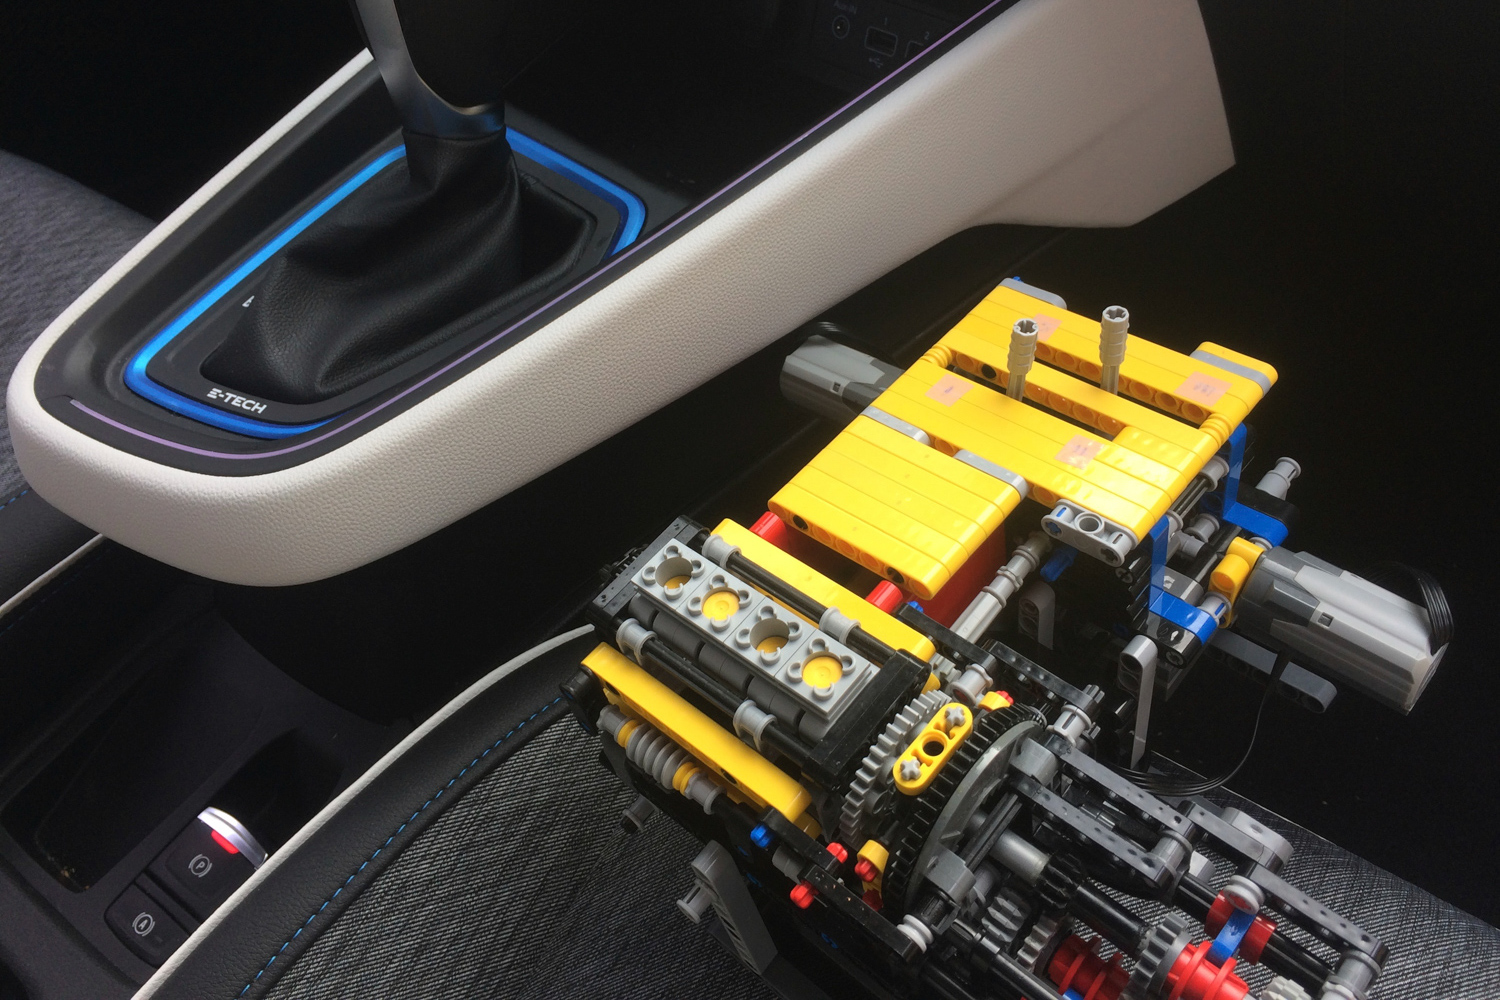 Renault used Lego to design its hybrid powertrain